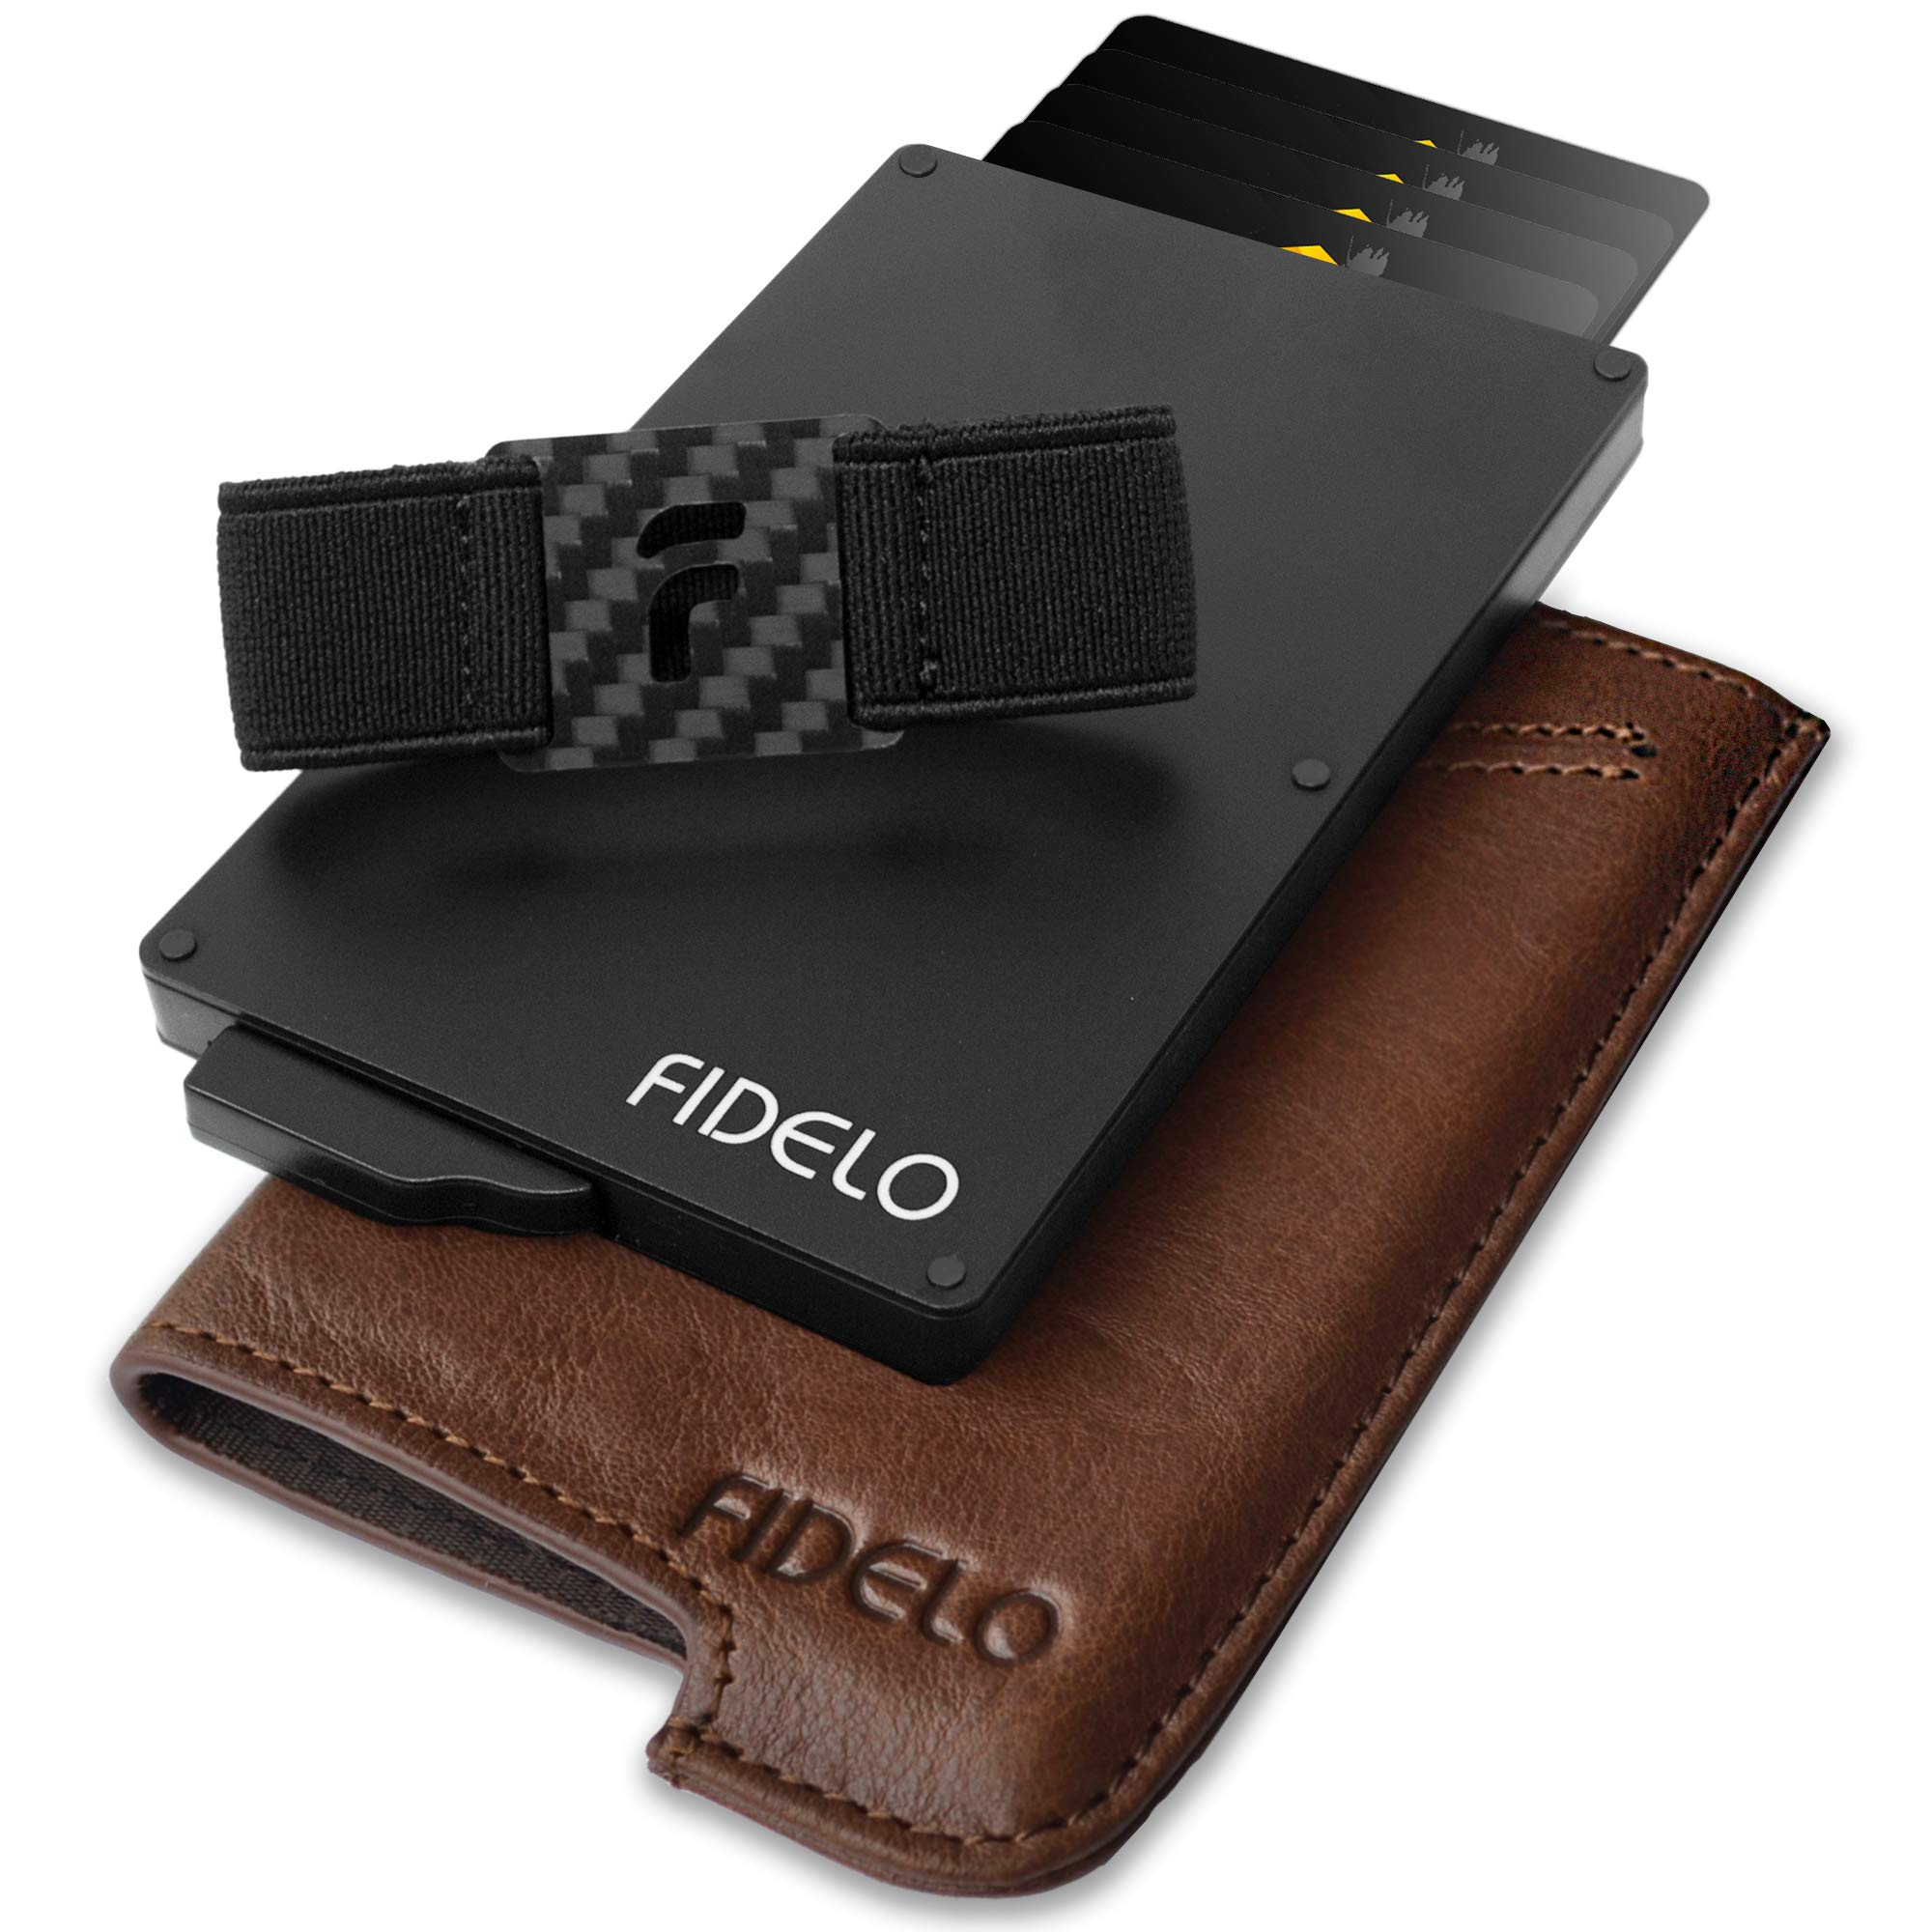 FIDELO Minimalist Wallet for Men - Slim Credit Card Holder RFID Mens Wallets with Leather Case (''Vintage Brown'' Vegetable Tanned Leather) by FIDELO